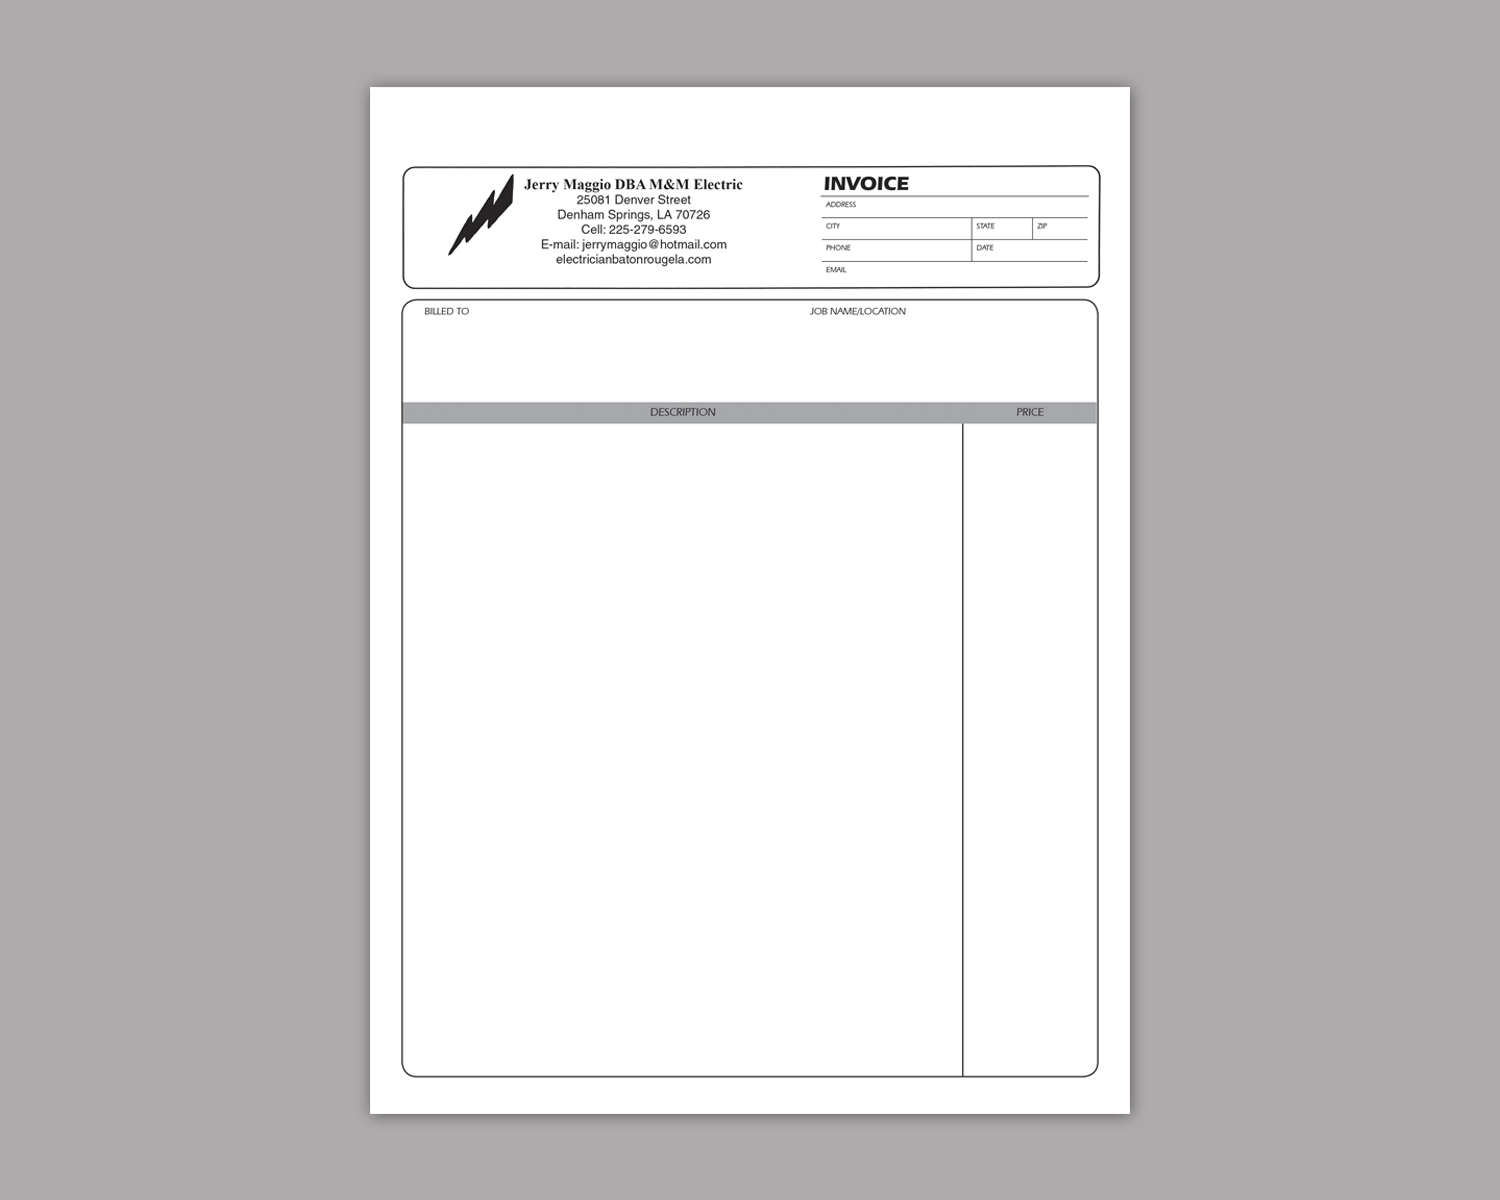 Form Sample 5.jpg